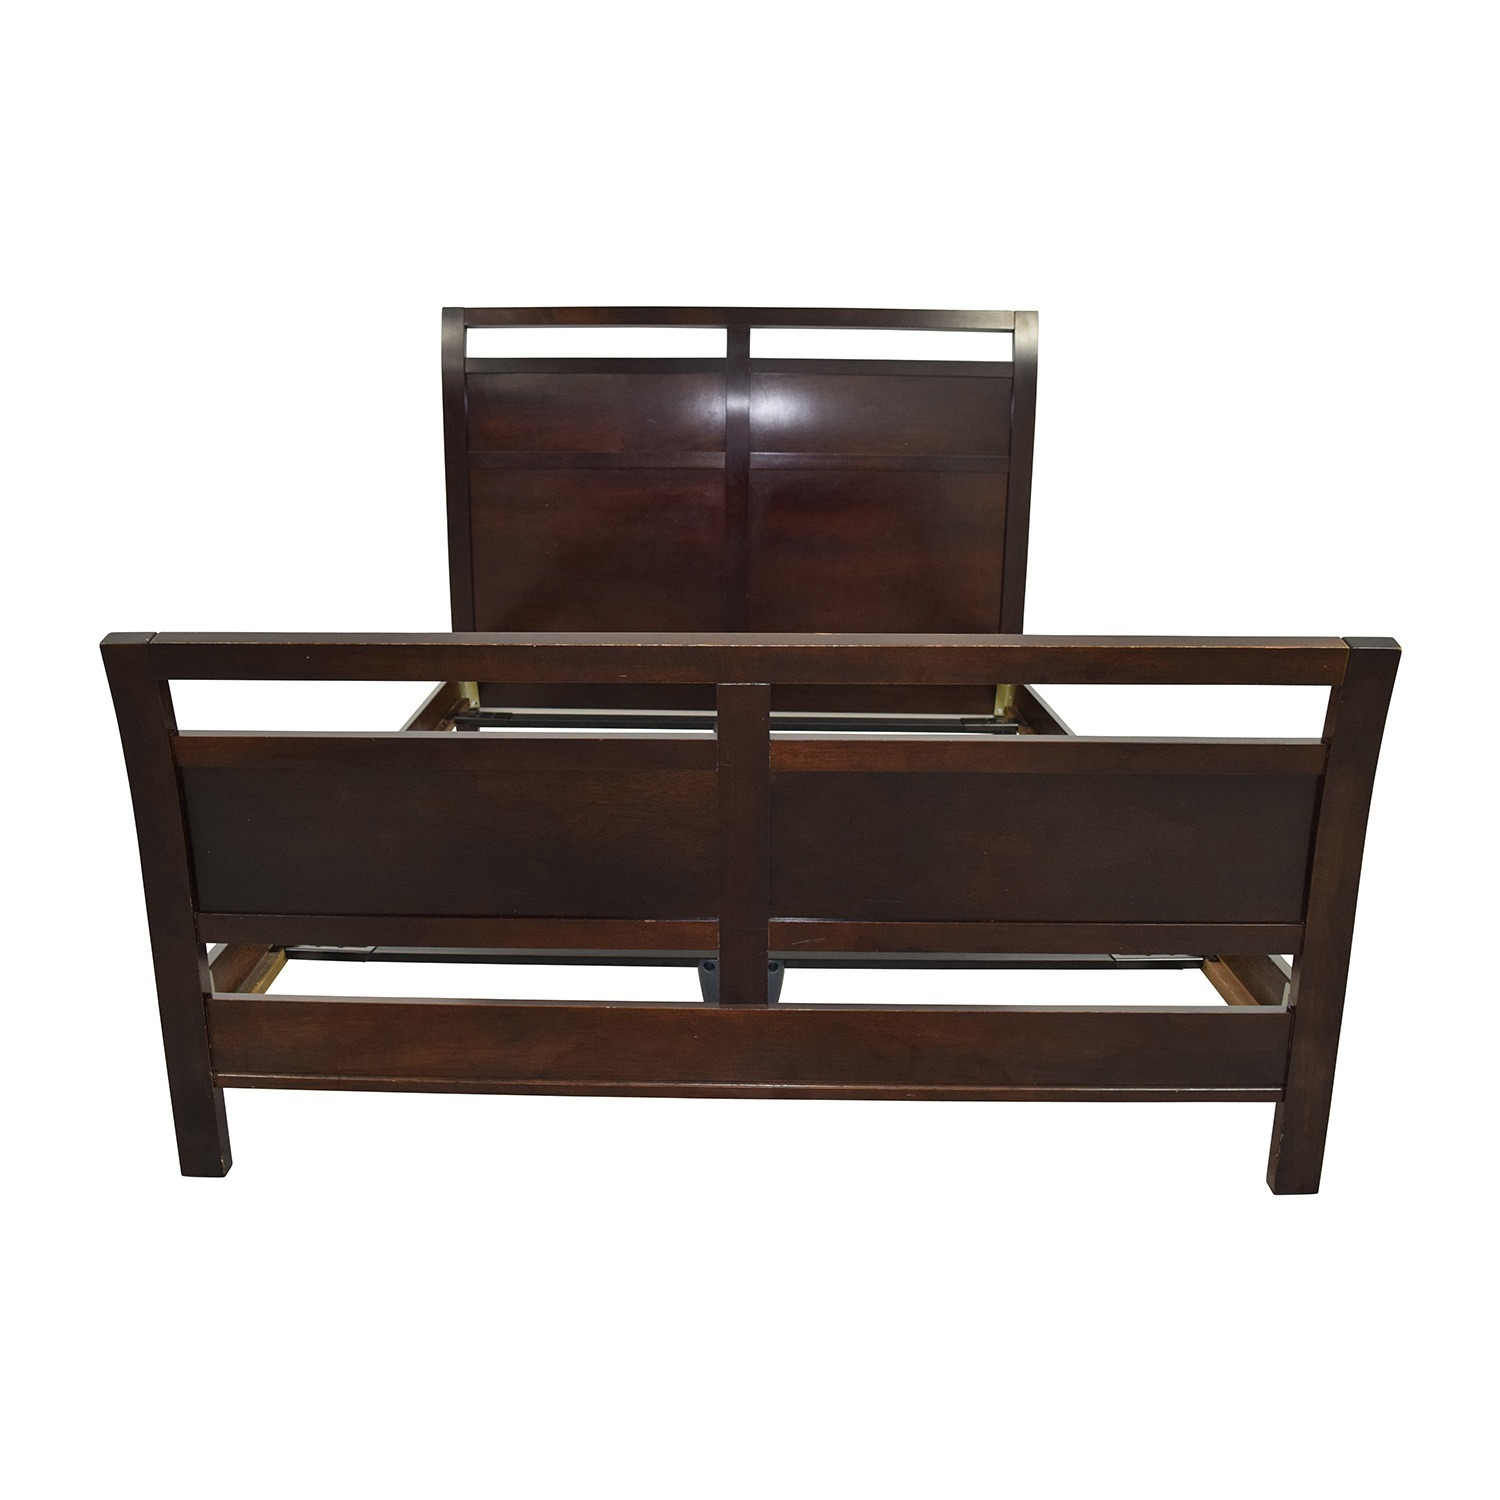 By Design Modern Sleigh Queen Bed w/Slats - image-1